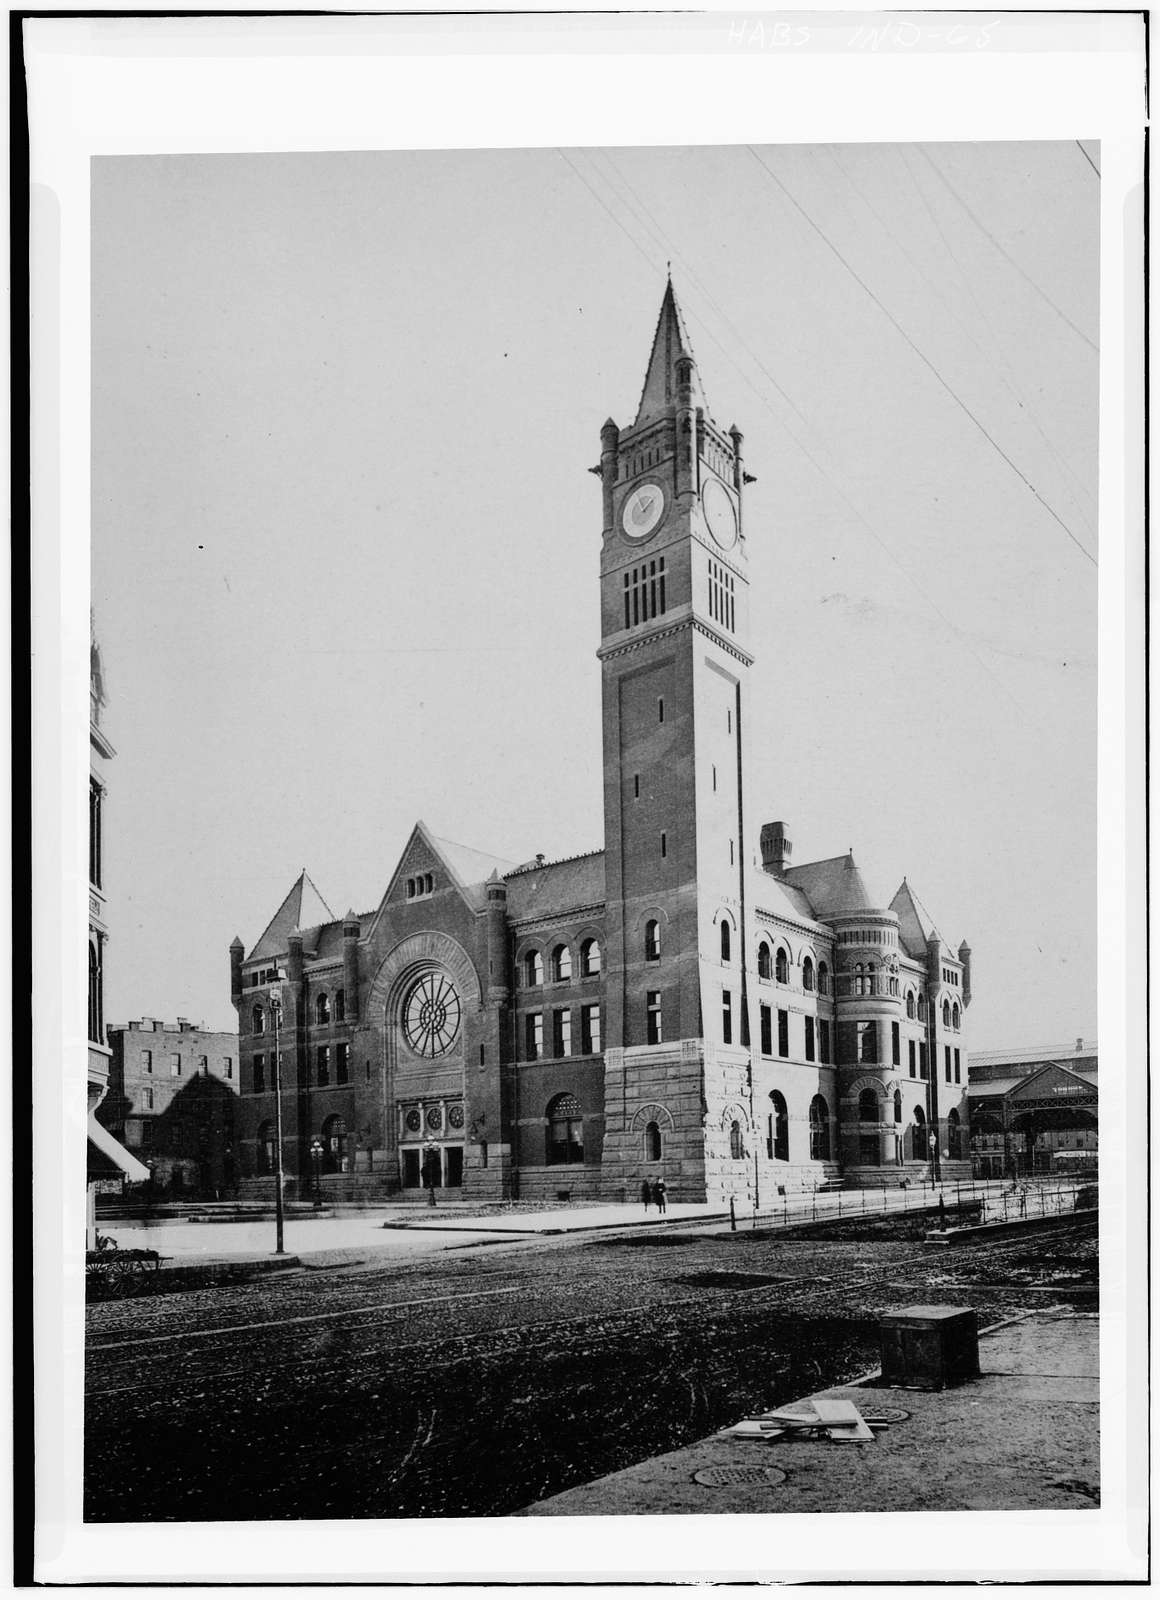 Union Station, Jackson Place & Illinois Street, Indianapolis, Marion County, IN